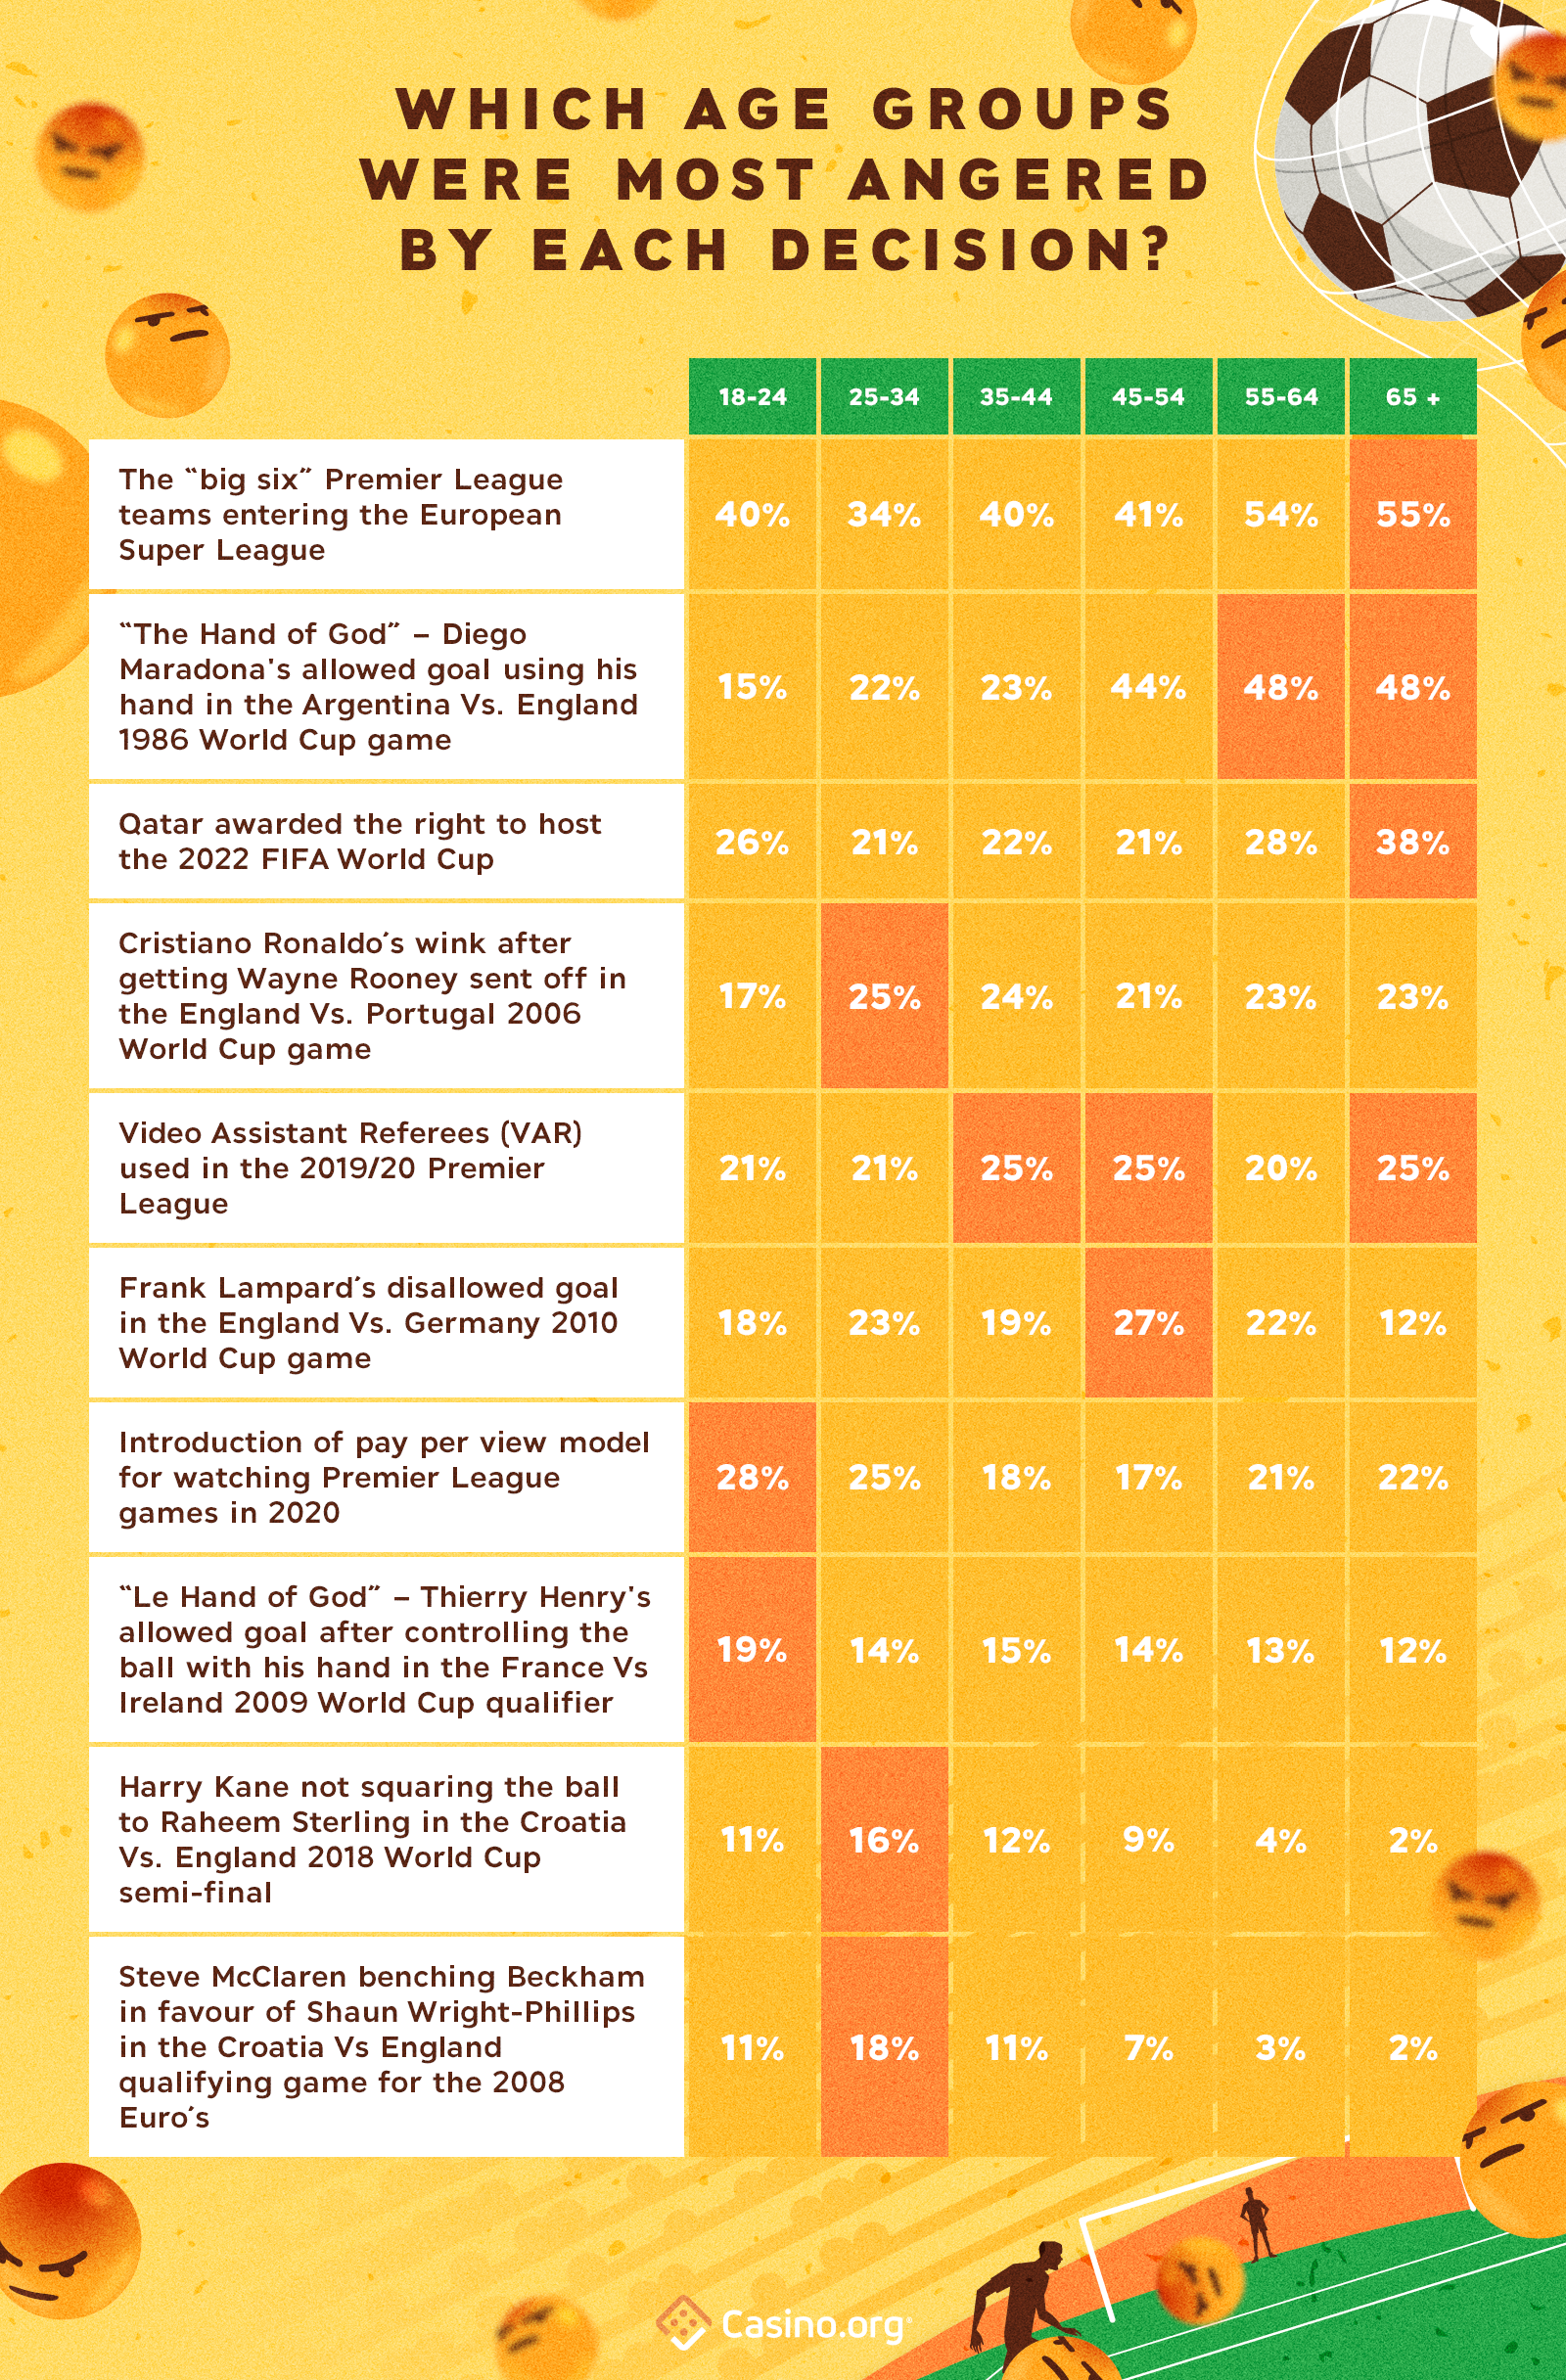 Decisions that make football players the angriest by age group - infographic